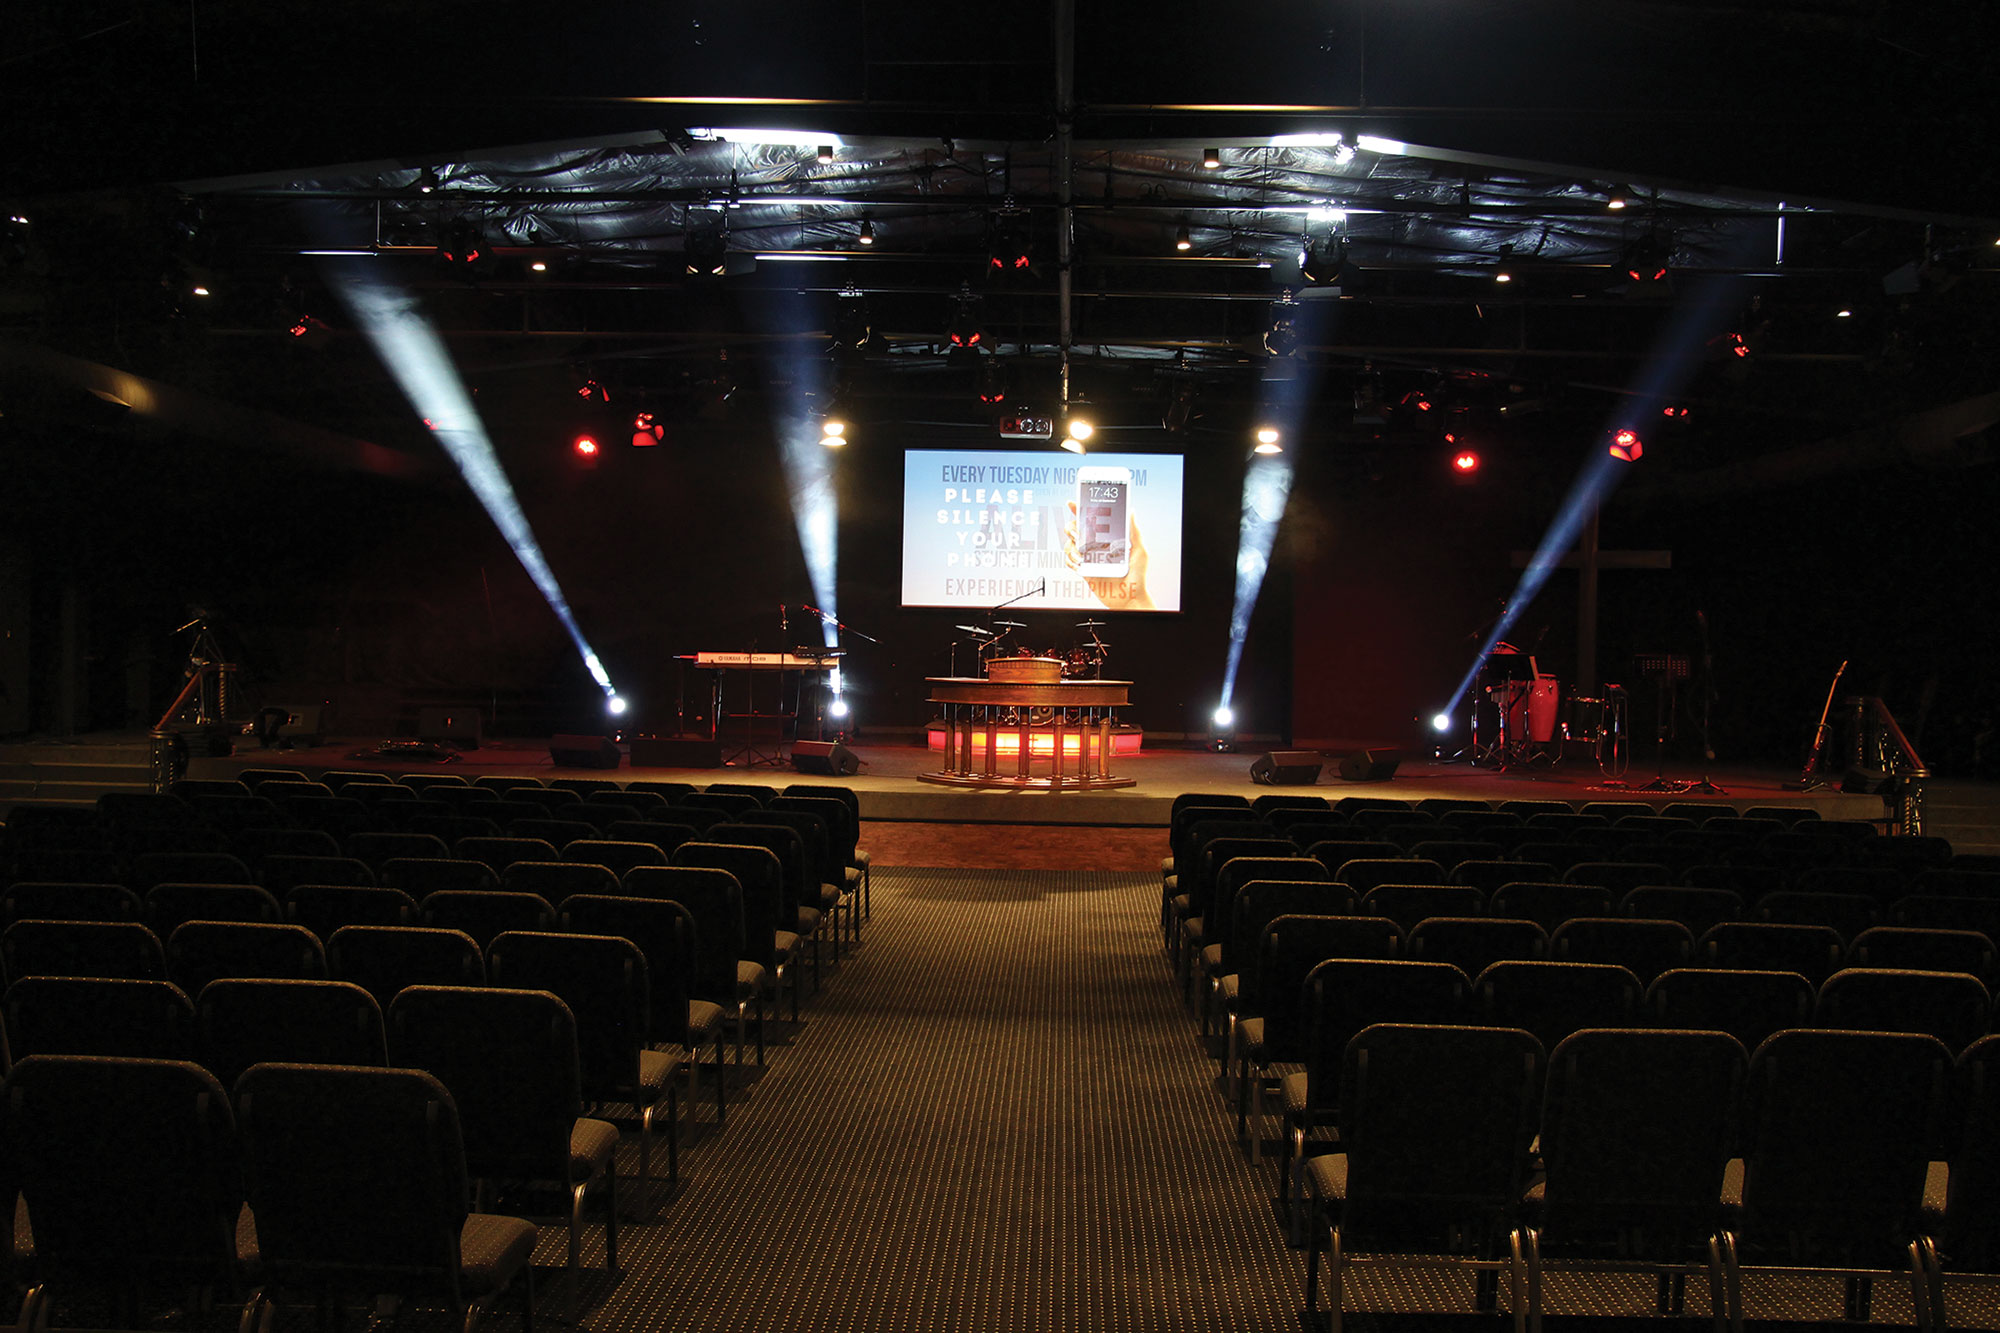 The lighting system provides many options, which does not create hotspots or unwanted shadows on the stage.